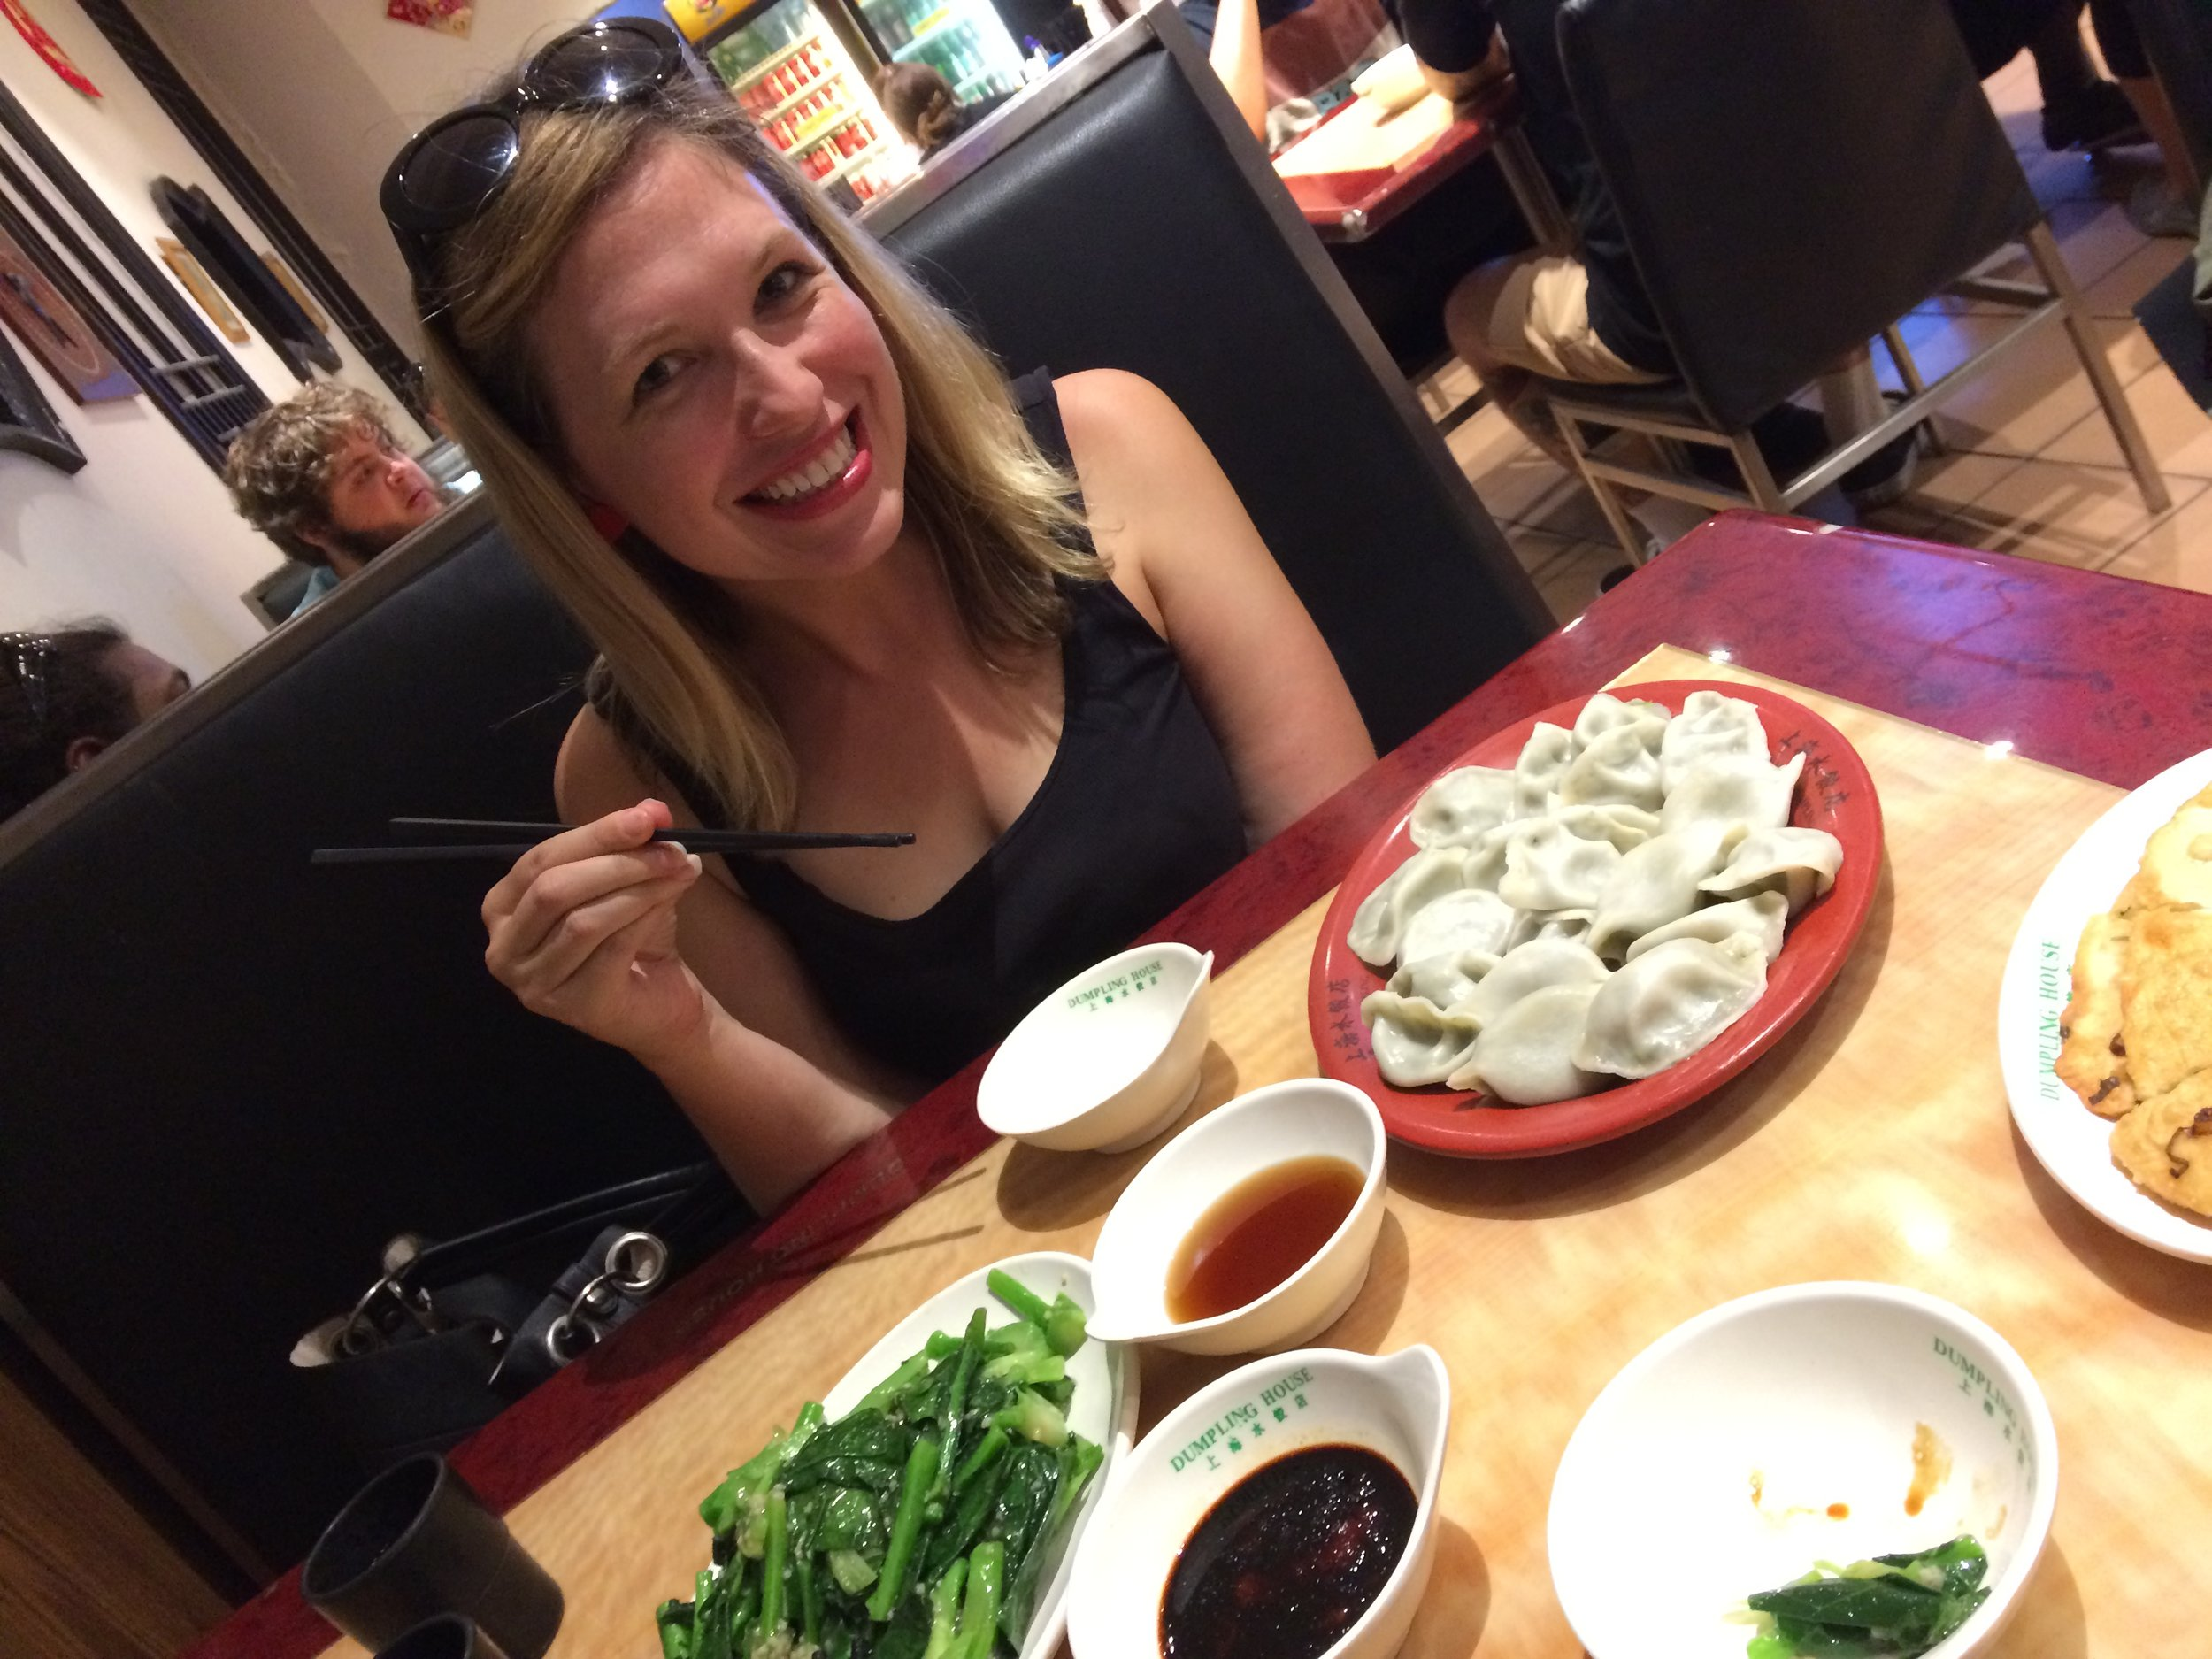 The face of someone who had been anticipating Melbourne dumplings for some years.